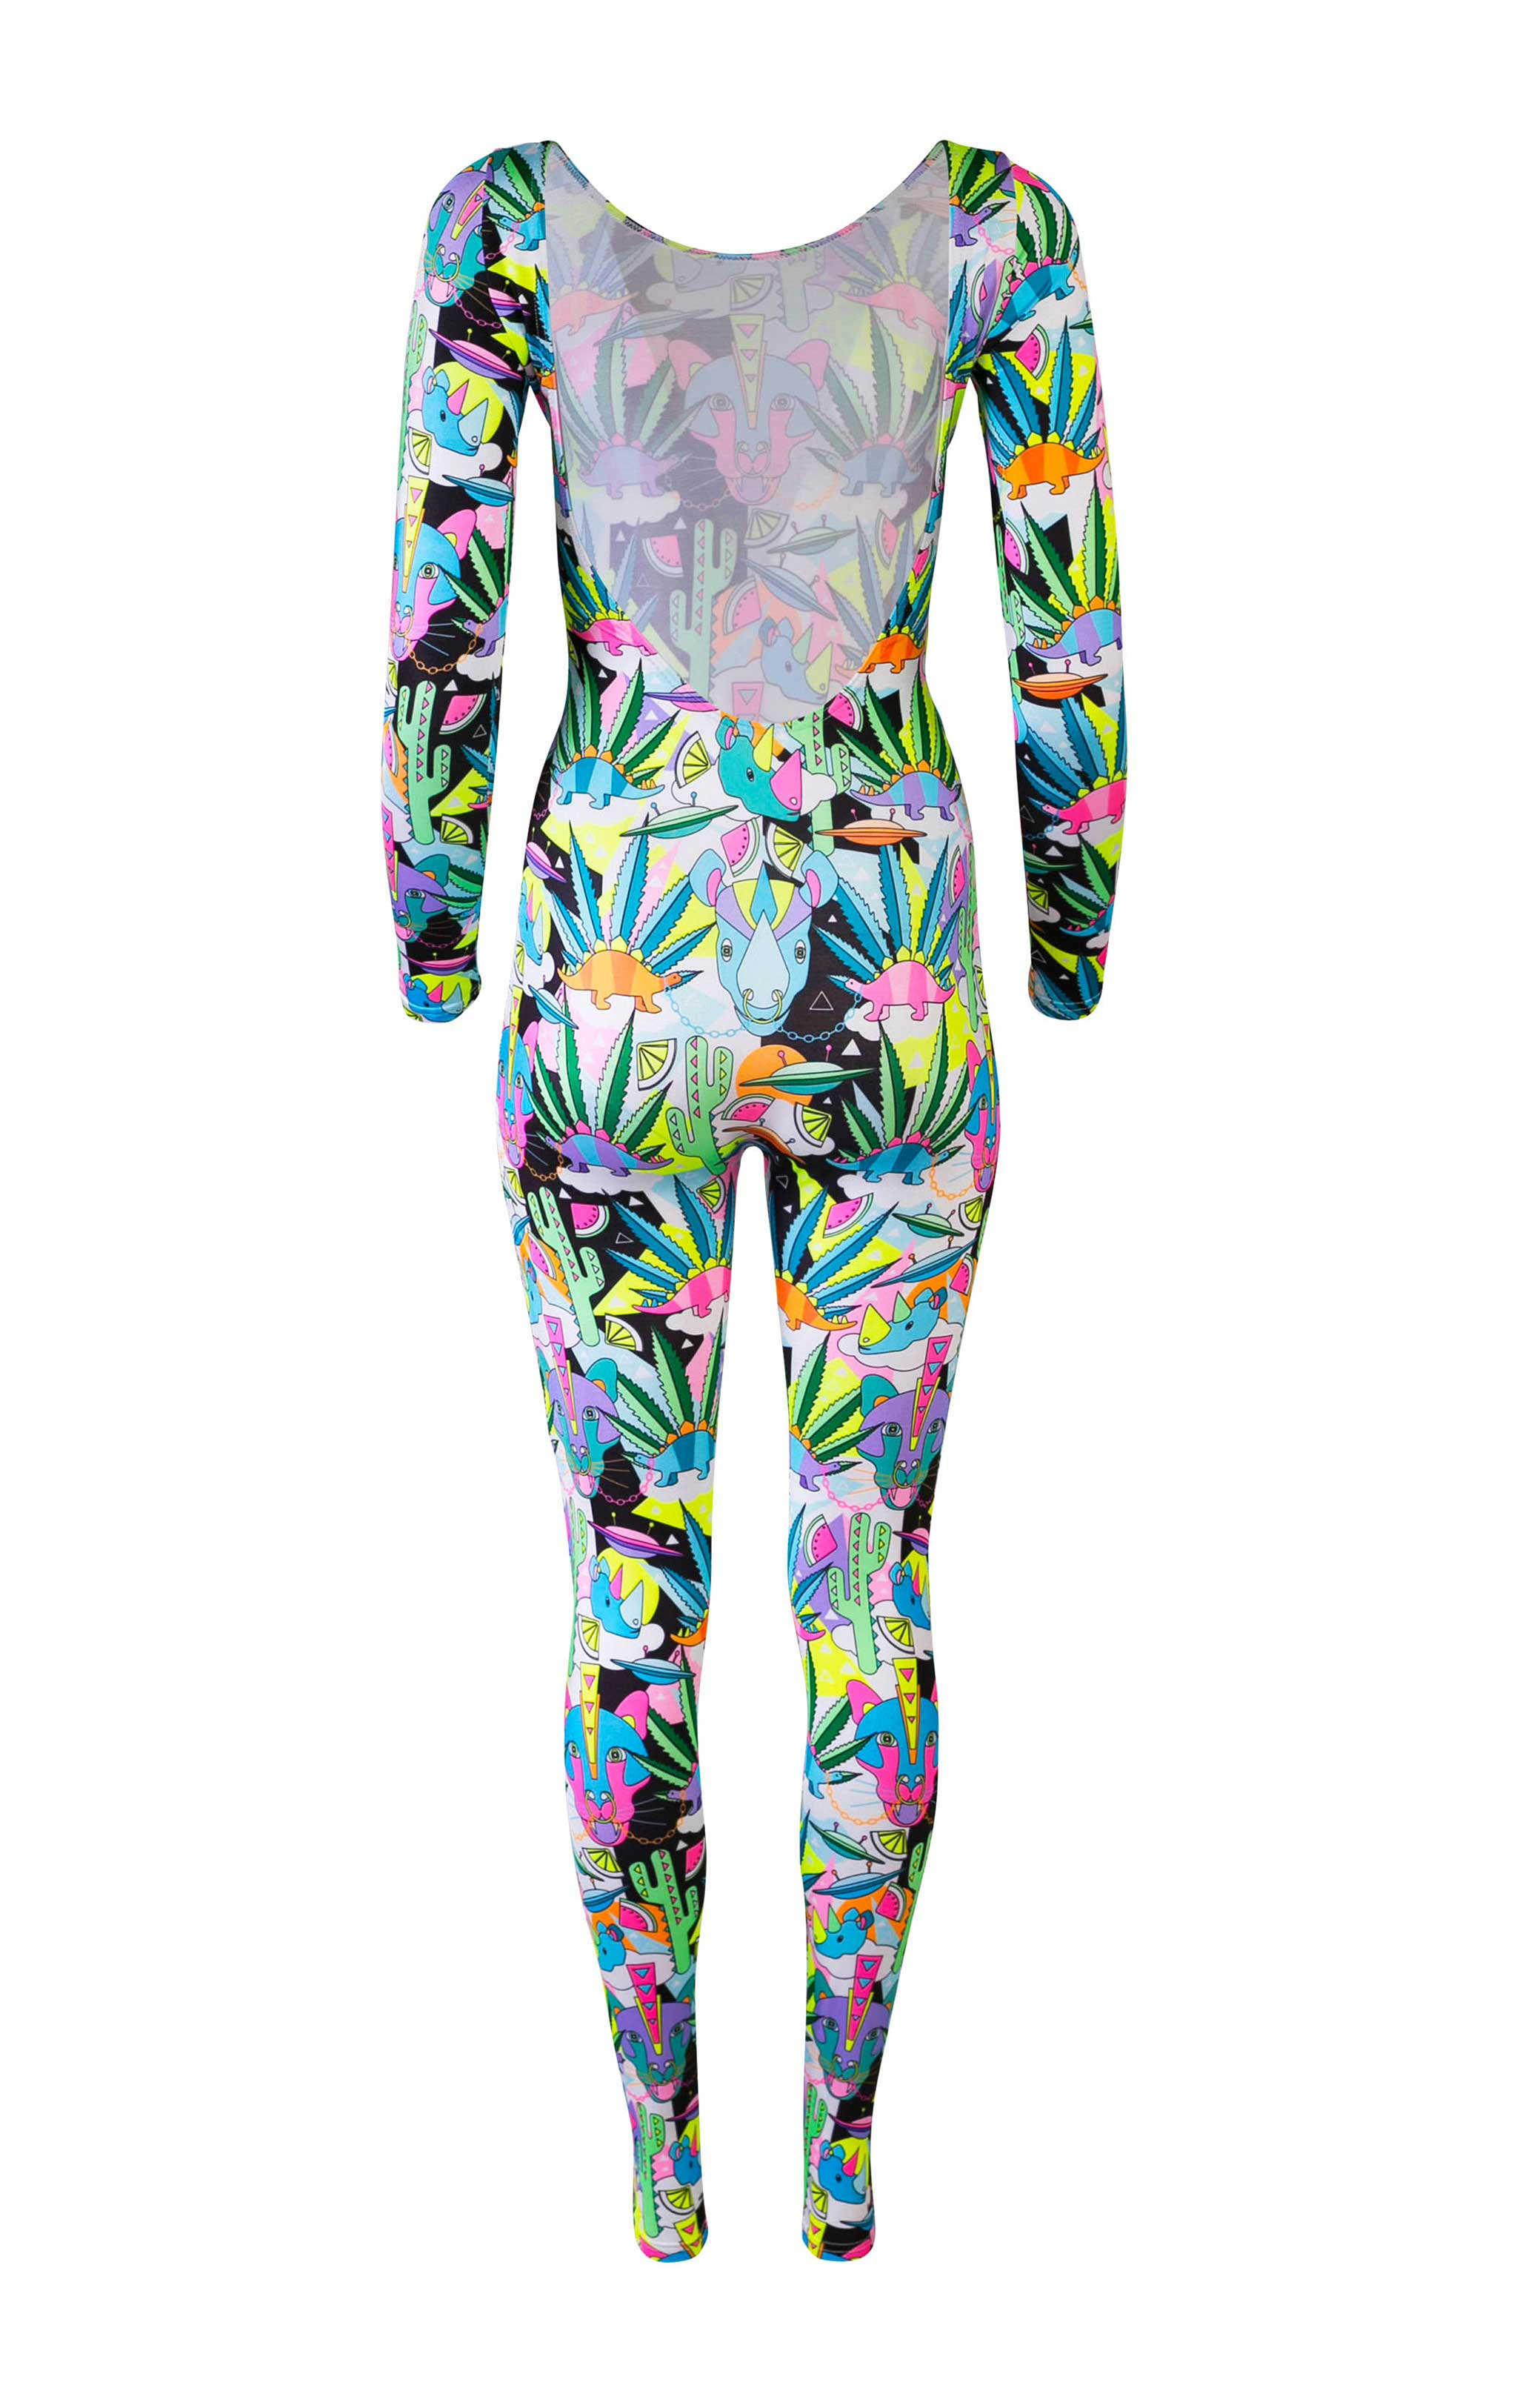 COSMIC CACTUS HOUSE OF SPANGLED PRINT BODYSUIT